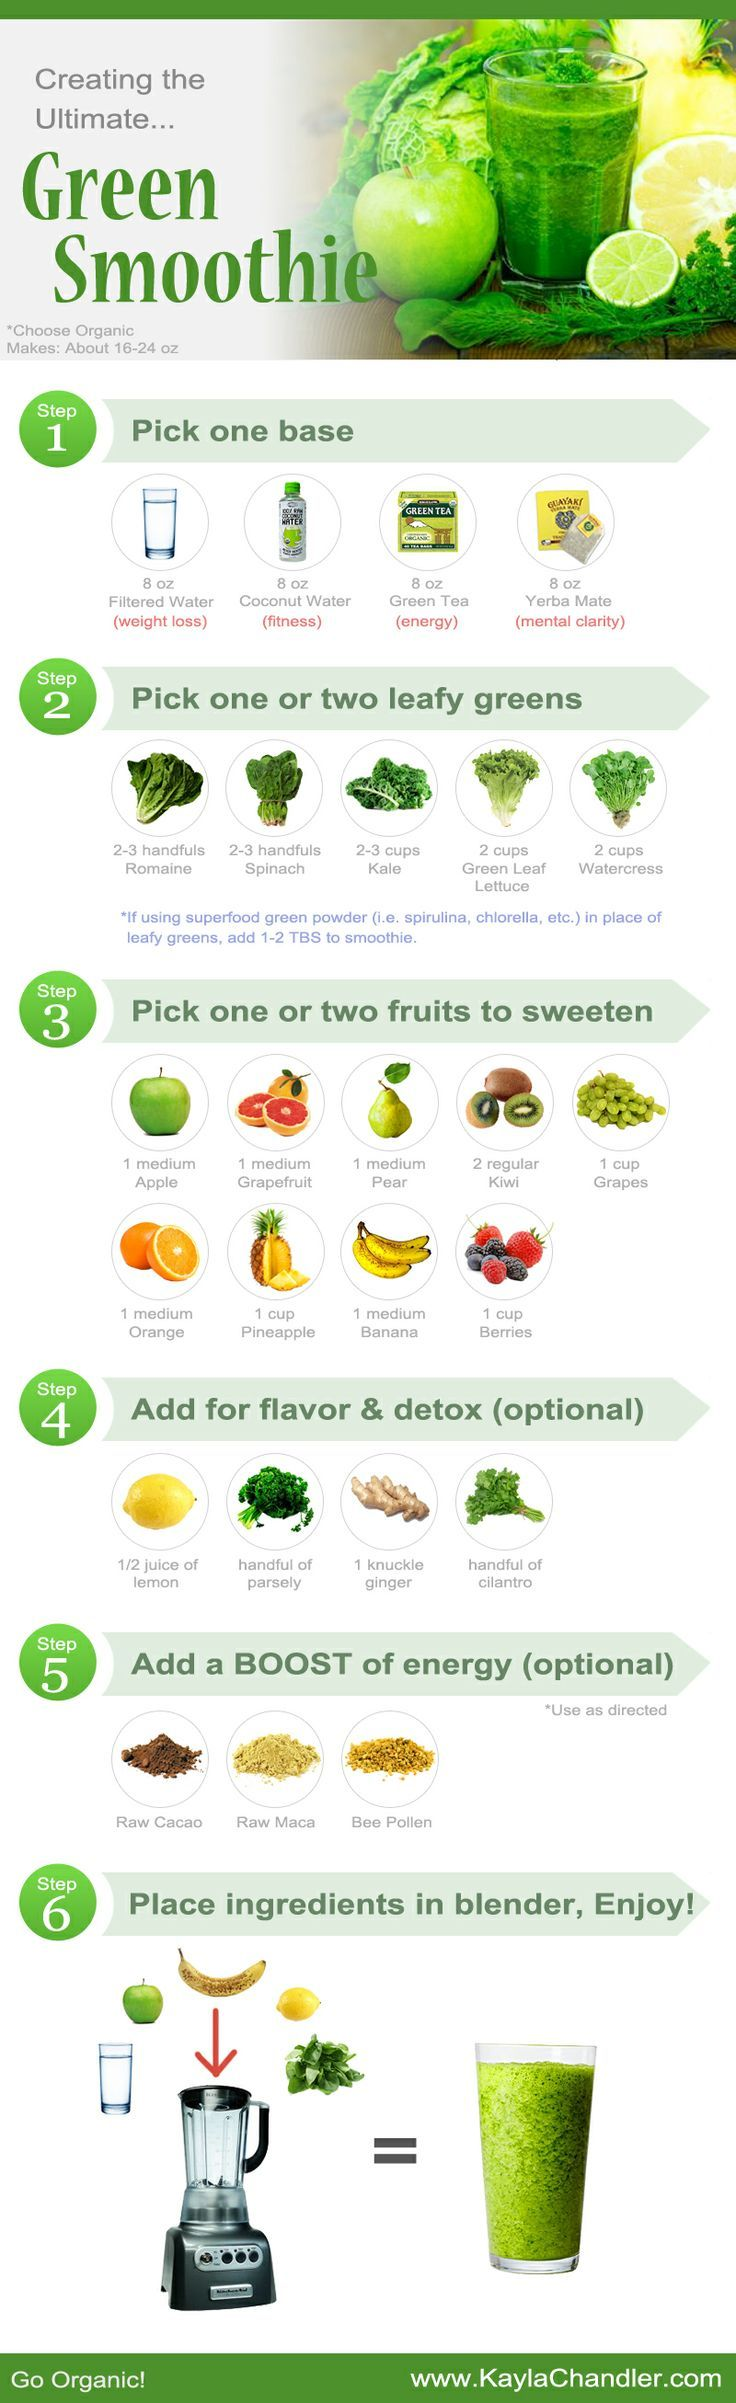 This is such an easy way to make a healthy smoothie!